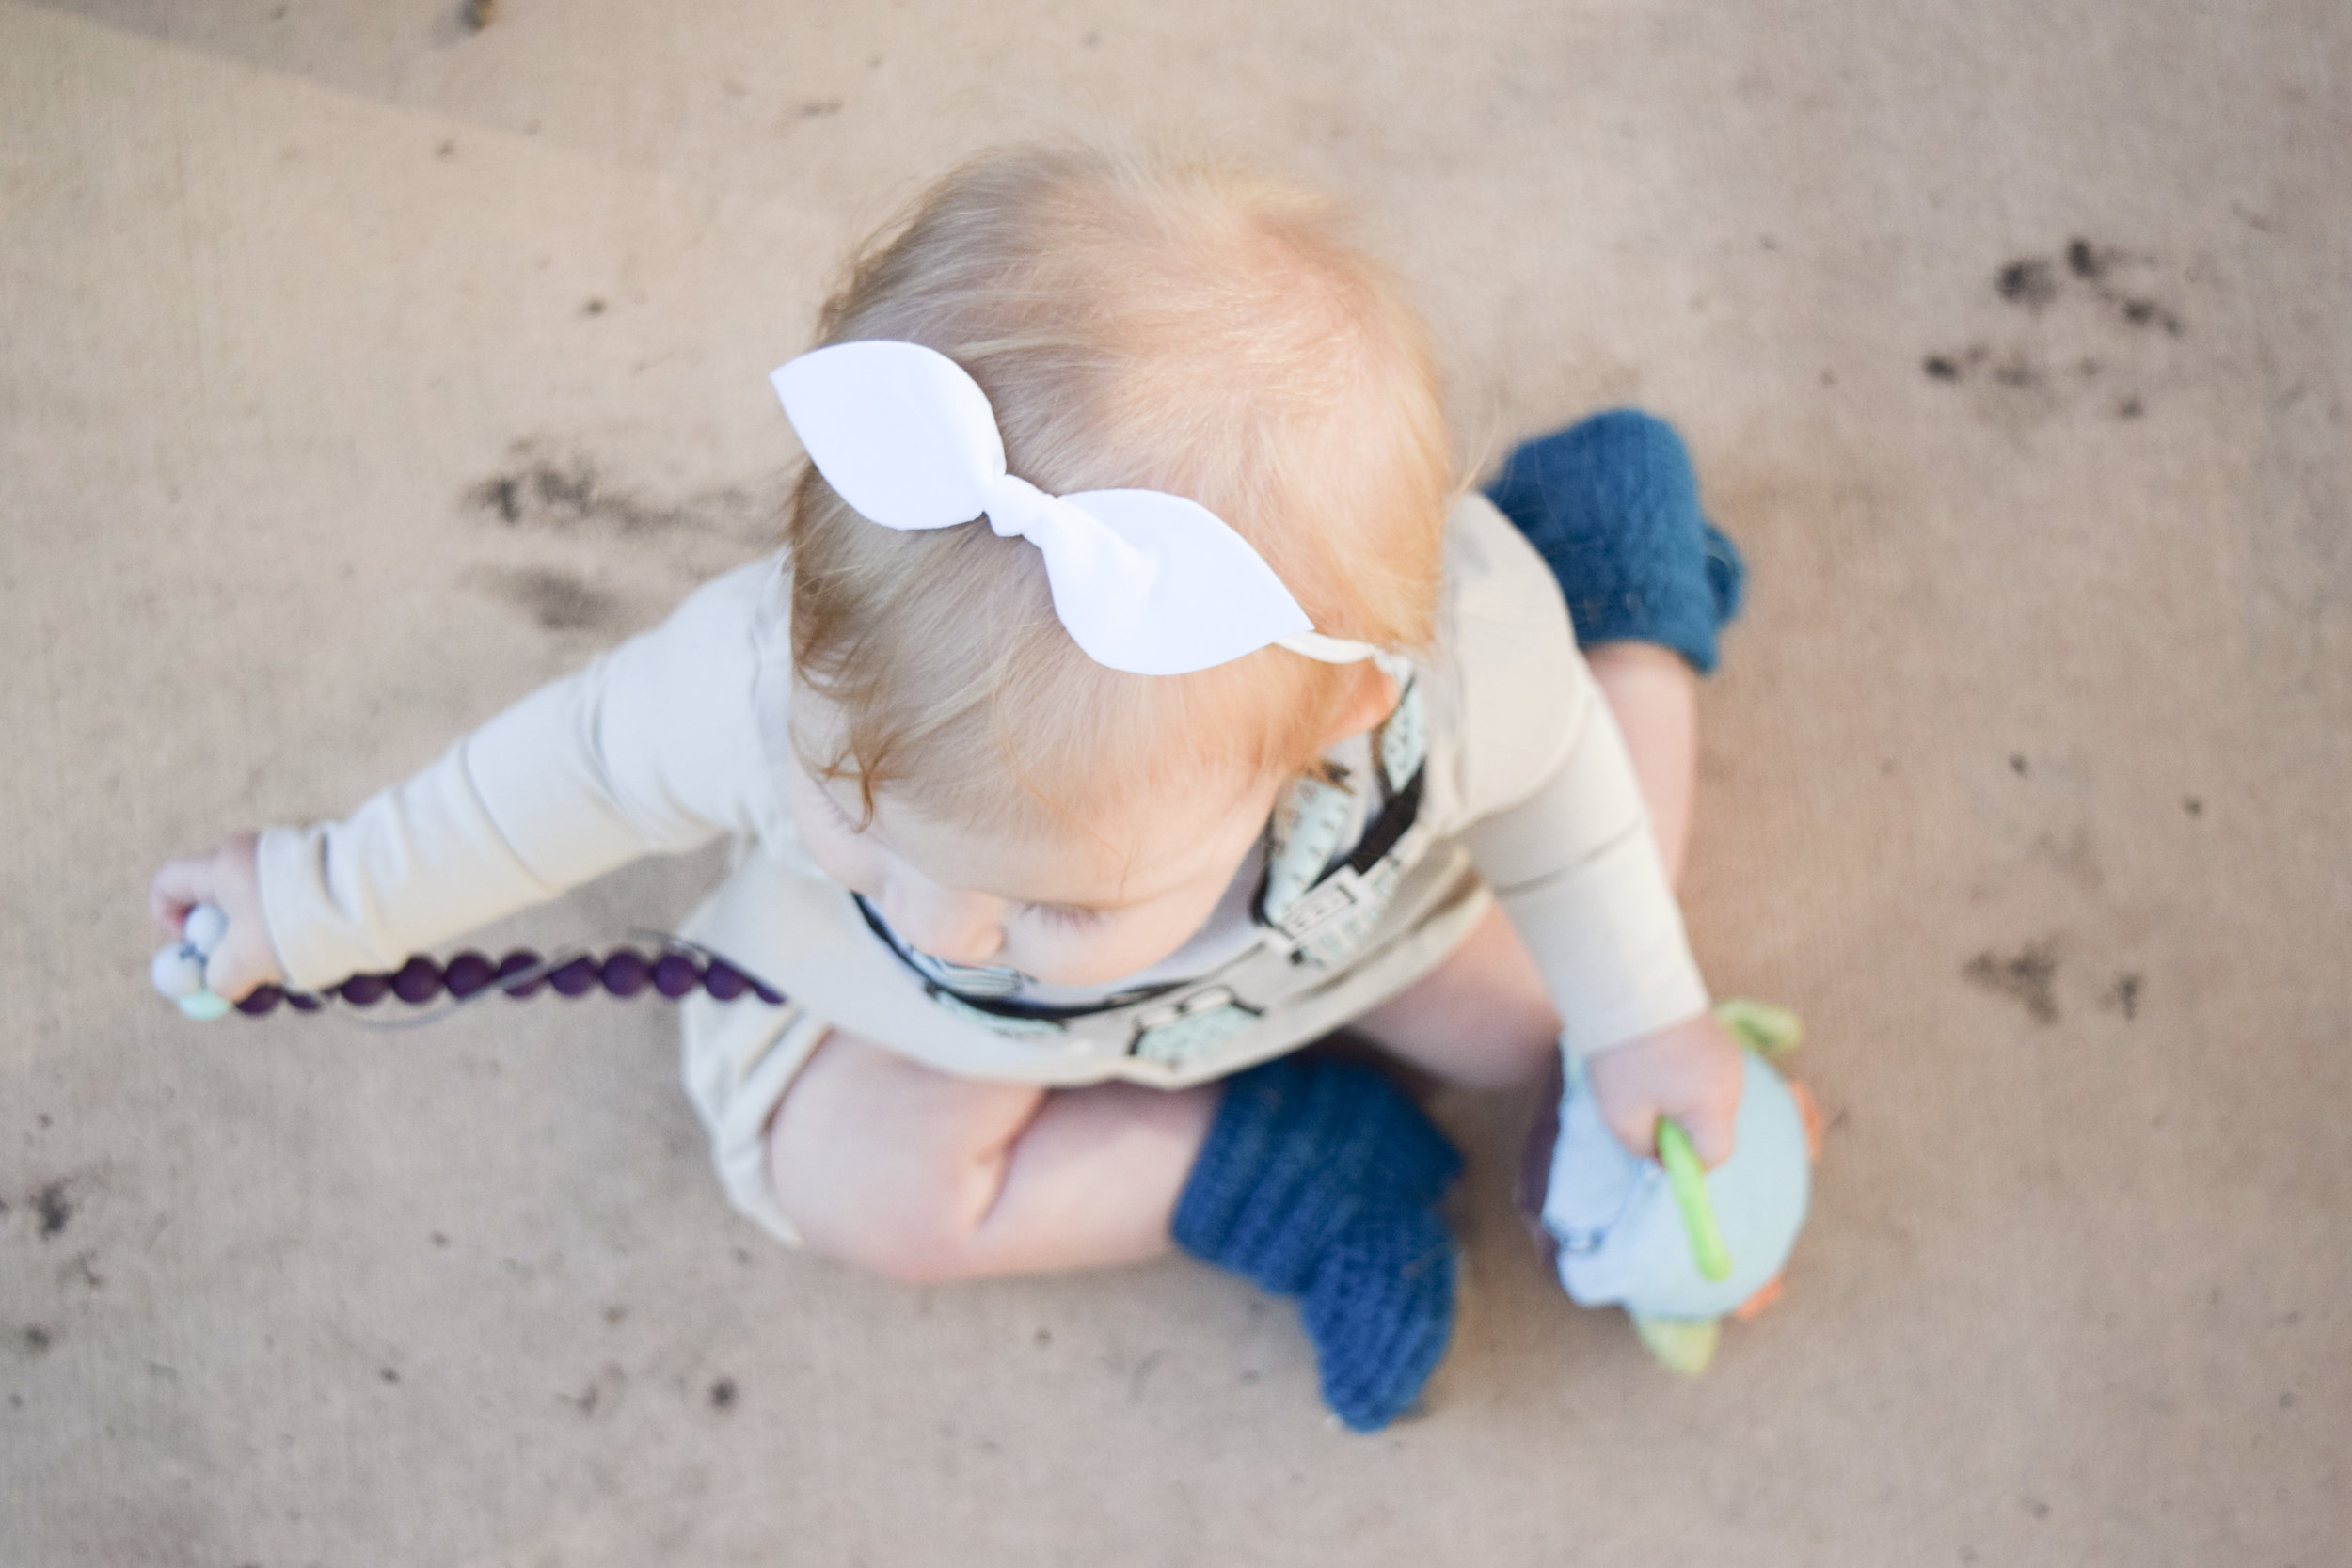 BABY FASHION - Baby Bib, White Baby Bow, Teal Baby Boots, Tan Baby Dress